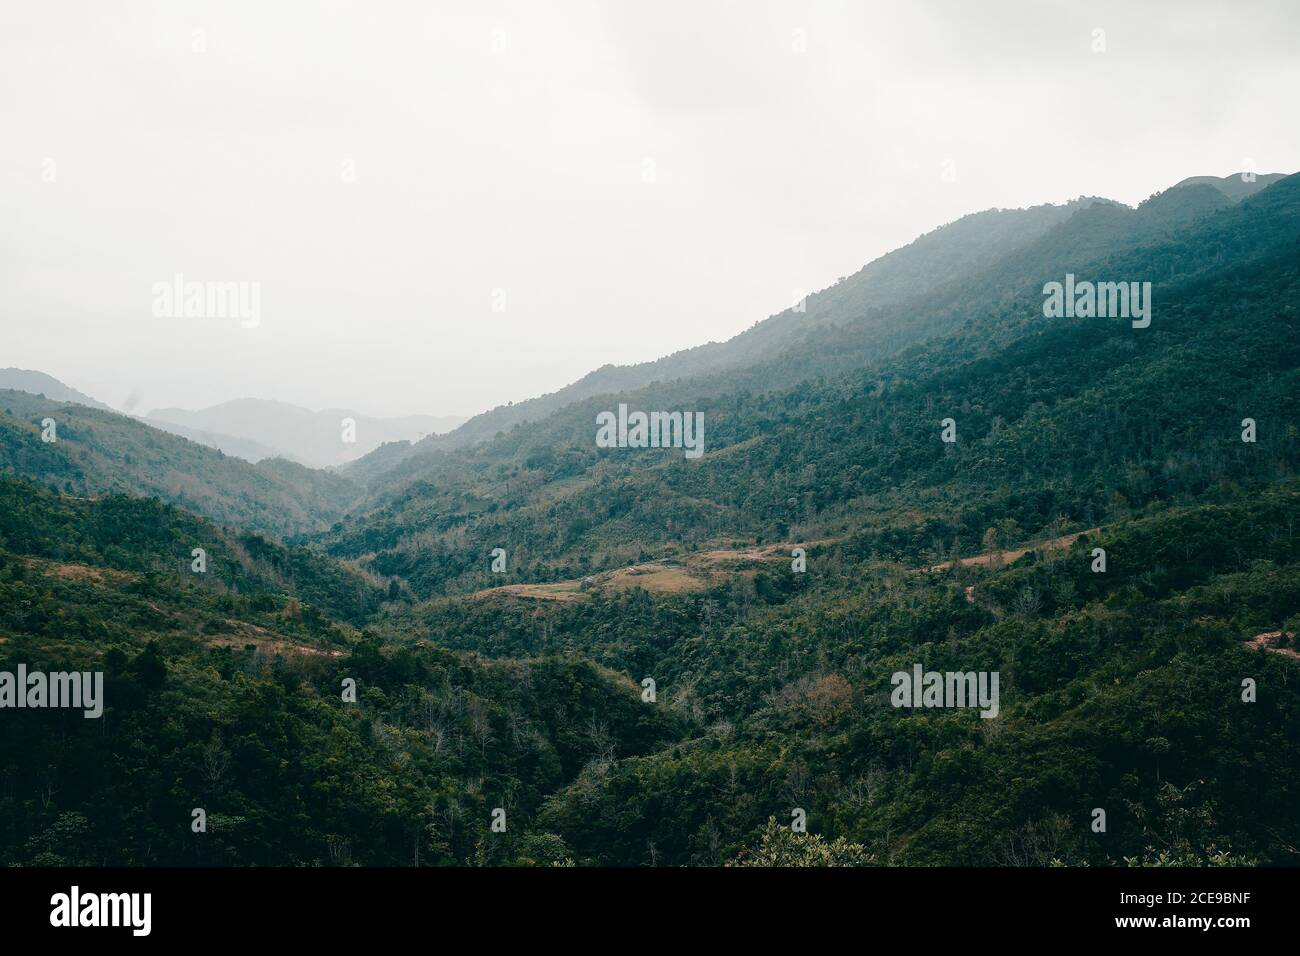 Panoramic image of Binh Lieu mountains area in Quang Ninh province in northeastern Vietnam. This is the border region of Vietnam - China. Stock Photo